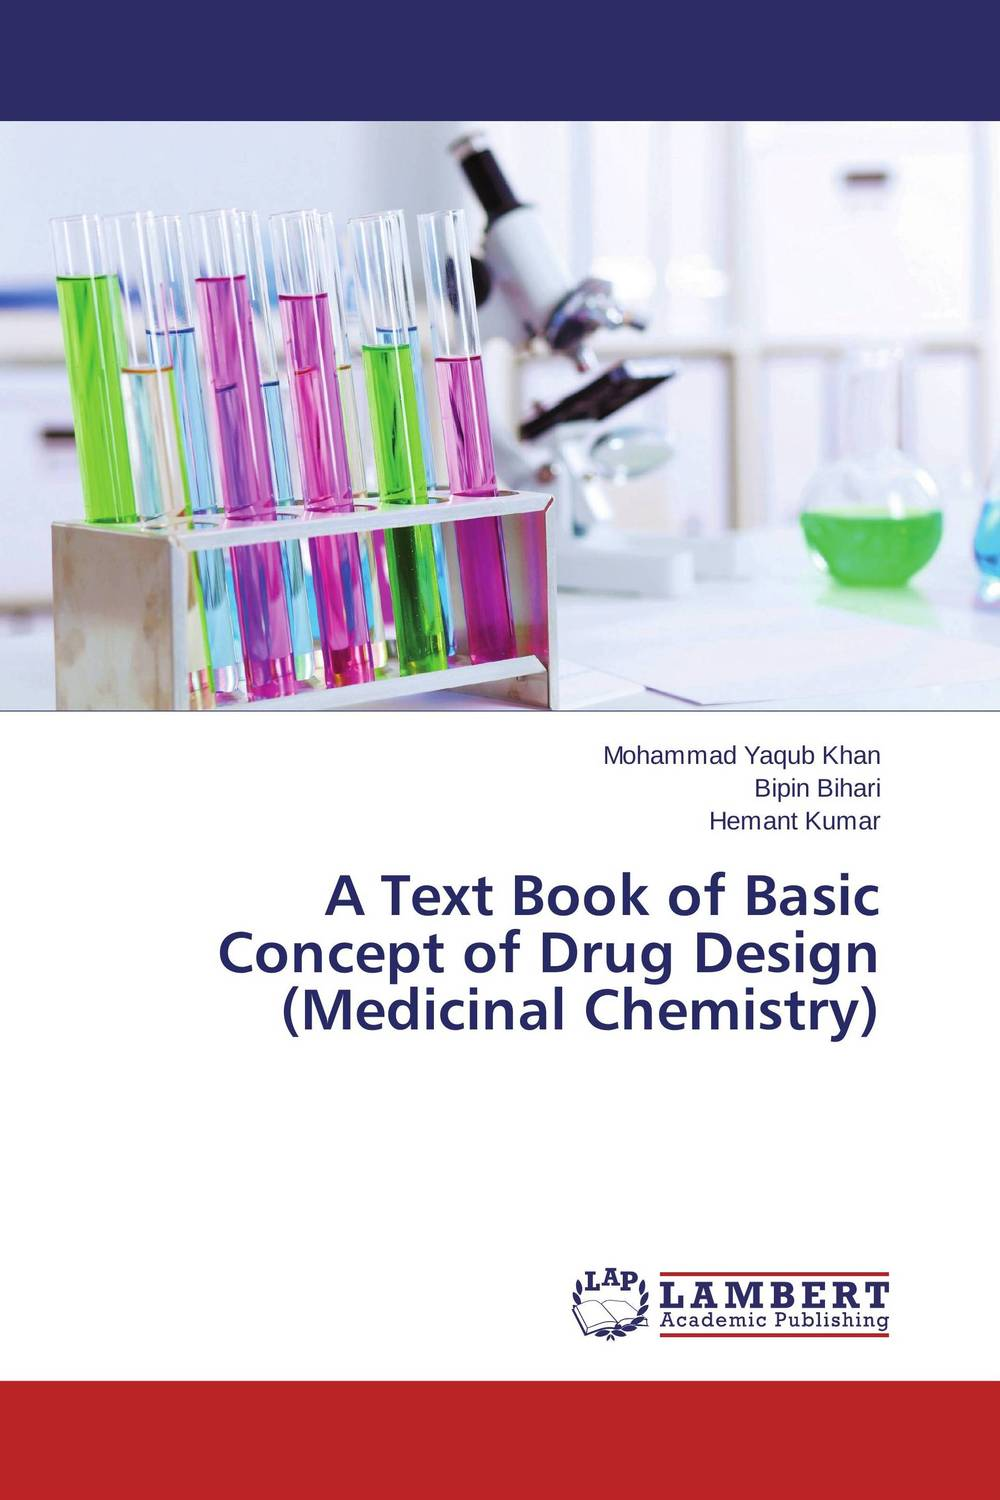 A Text Book of Basic Concept of Drug Design (Medicinal Chemistry) drug discovery and design